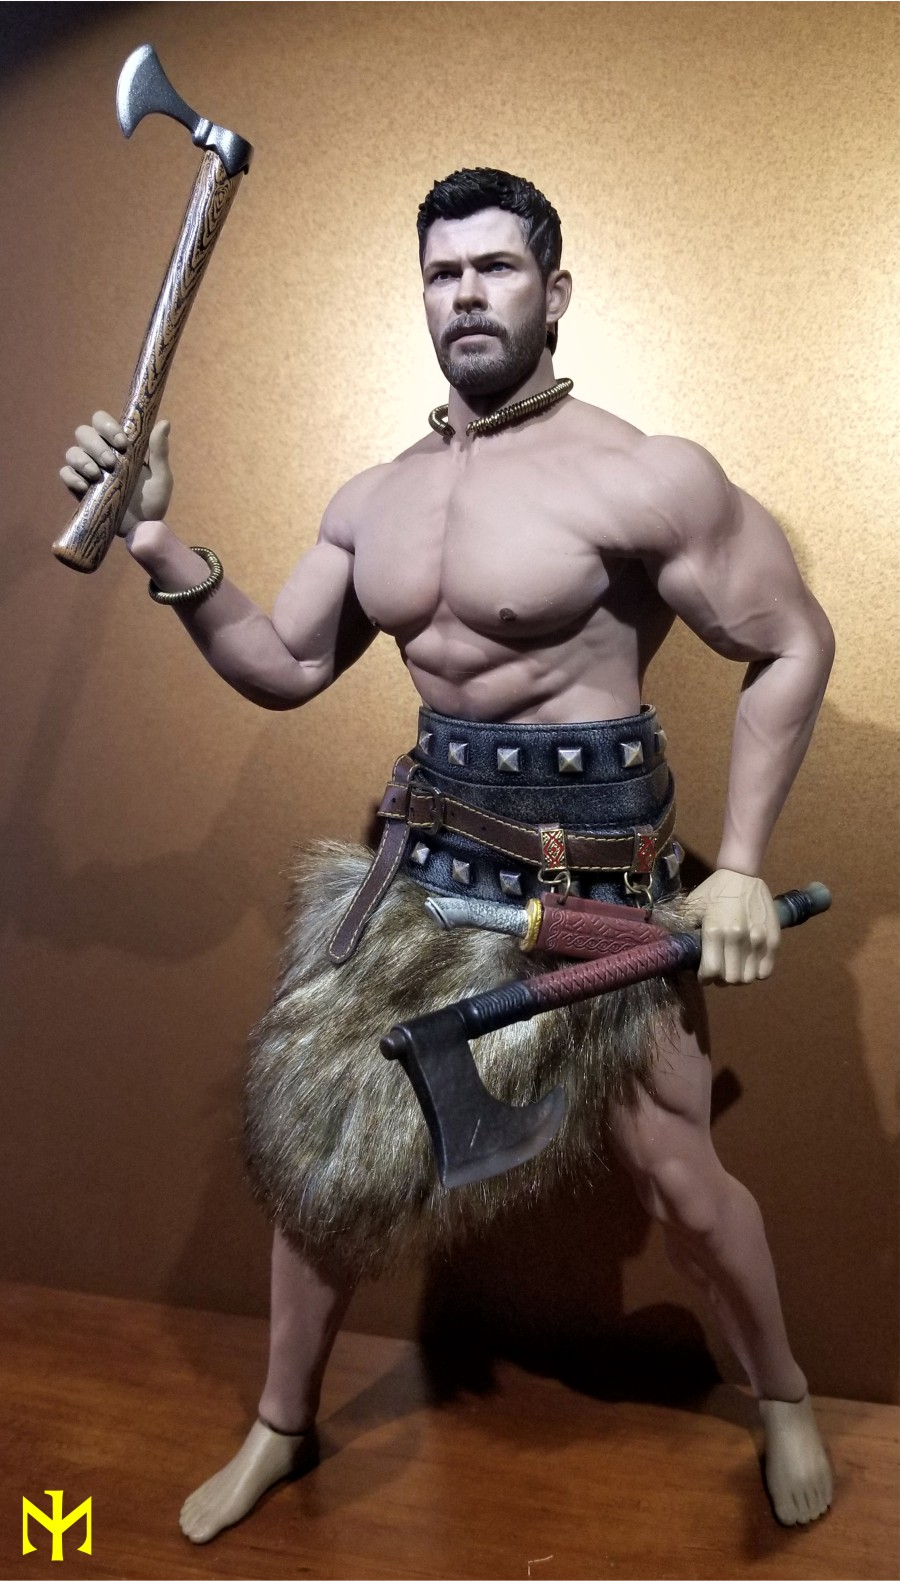 Conanesque: A Fantasy Warrior Kitbash (update 5: February 2020) Viking53